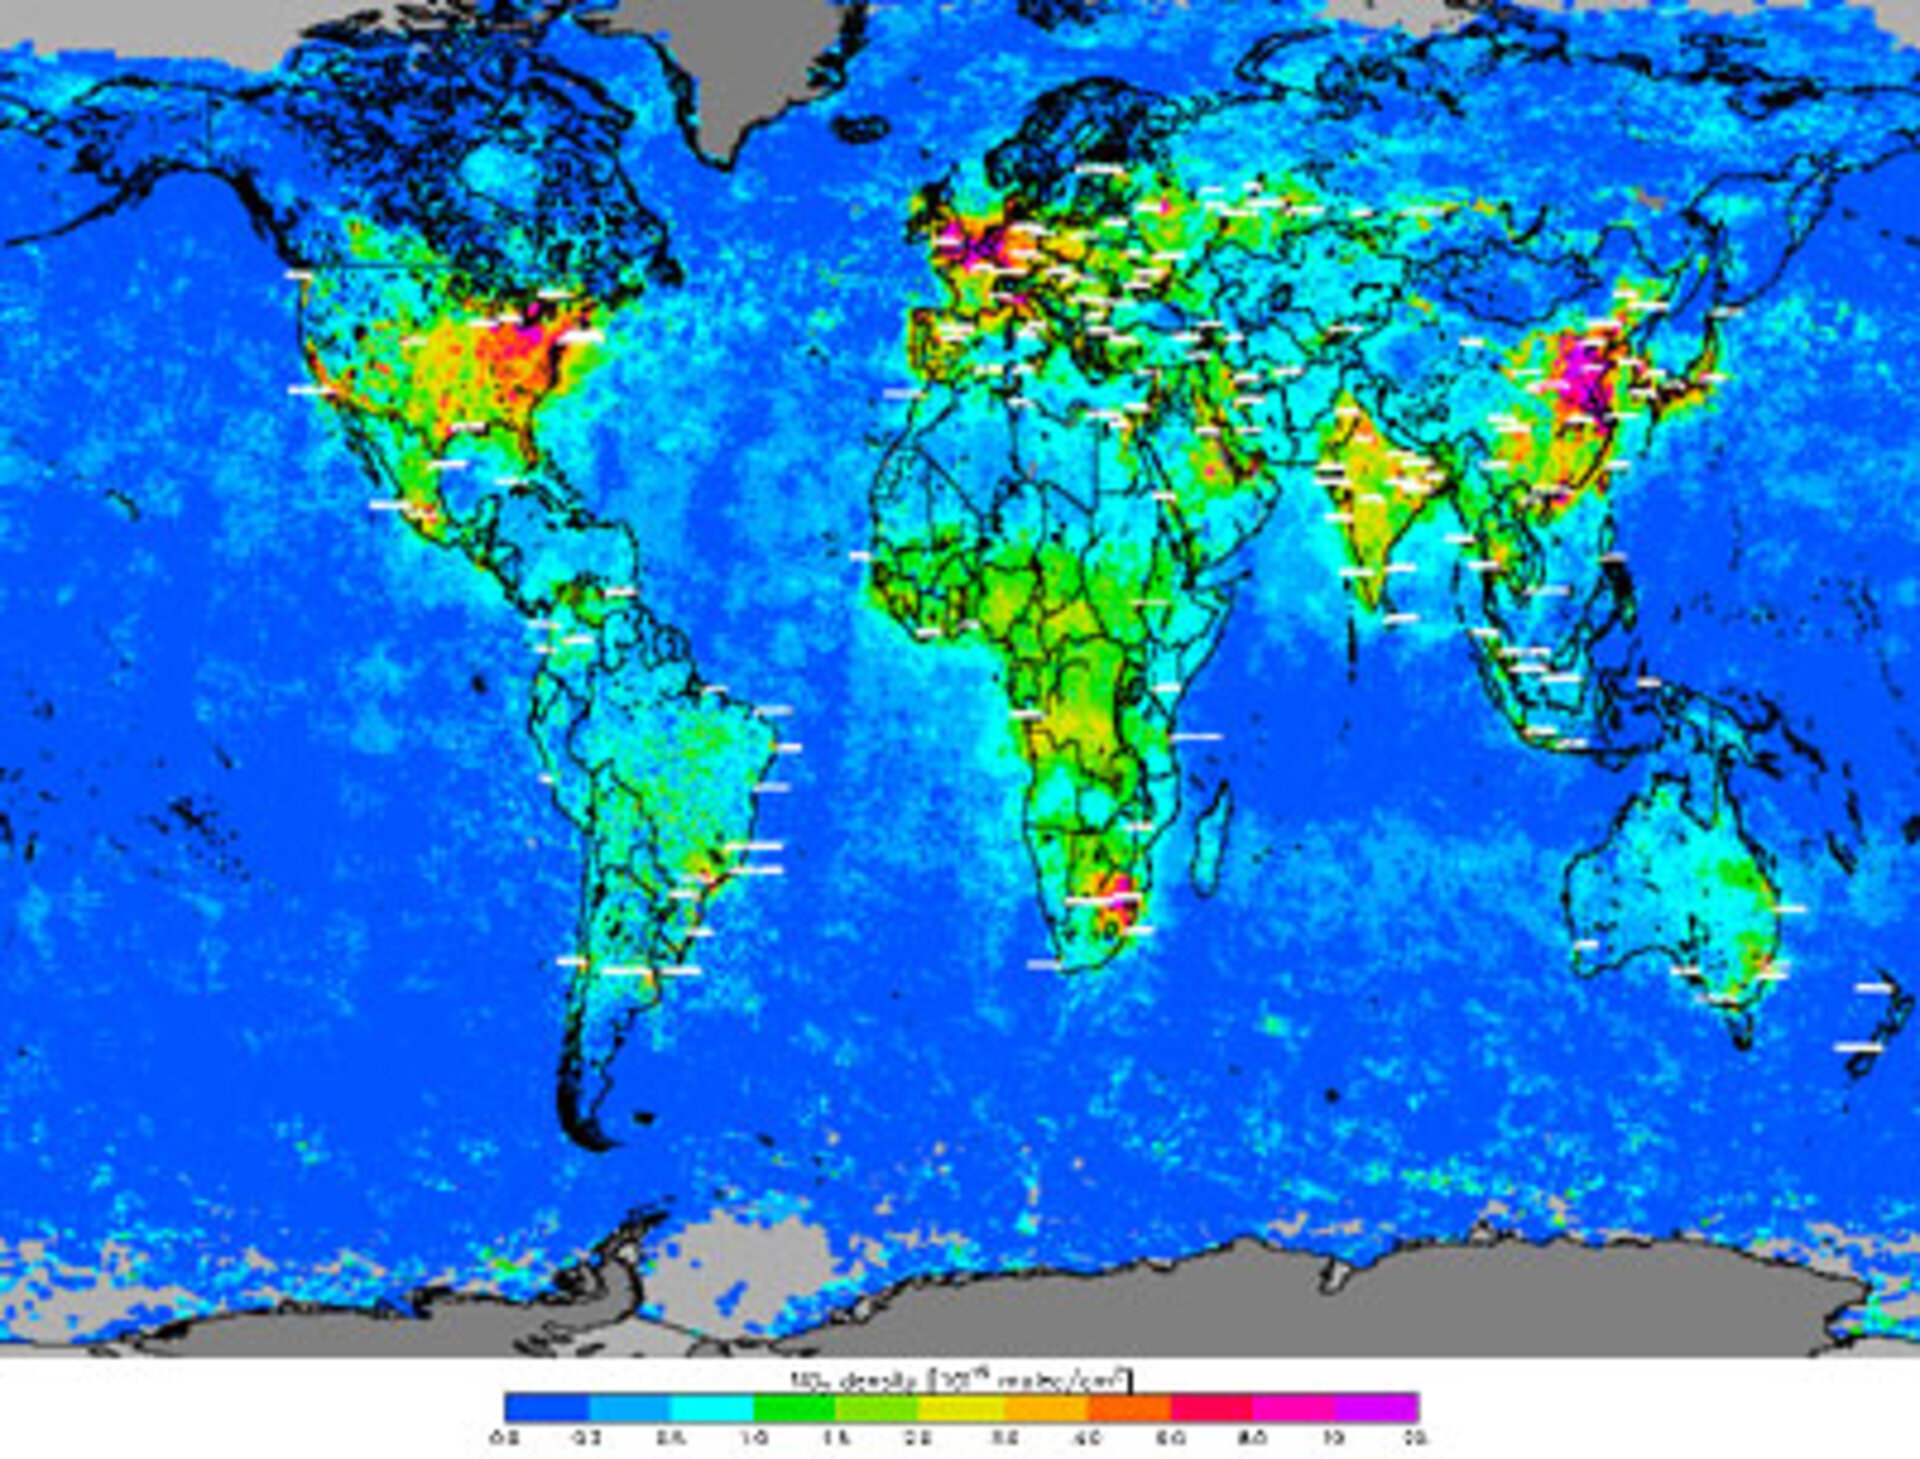 Air pollution measured by SCIAMACHY